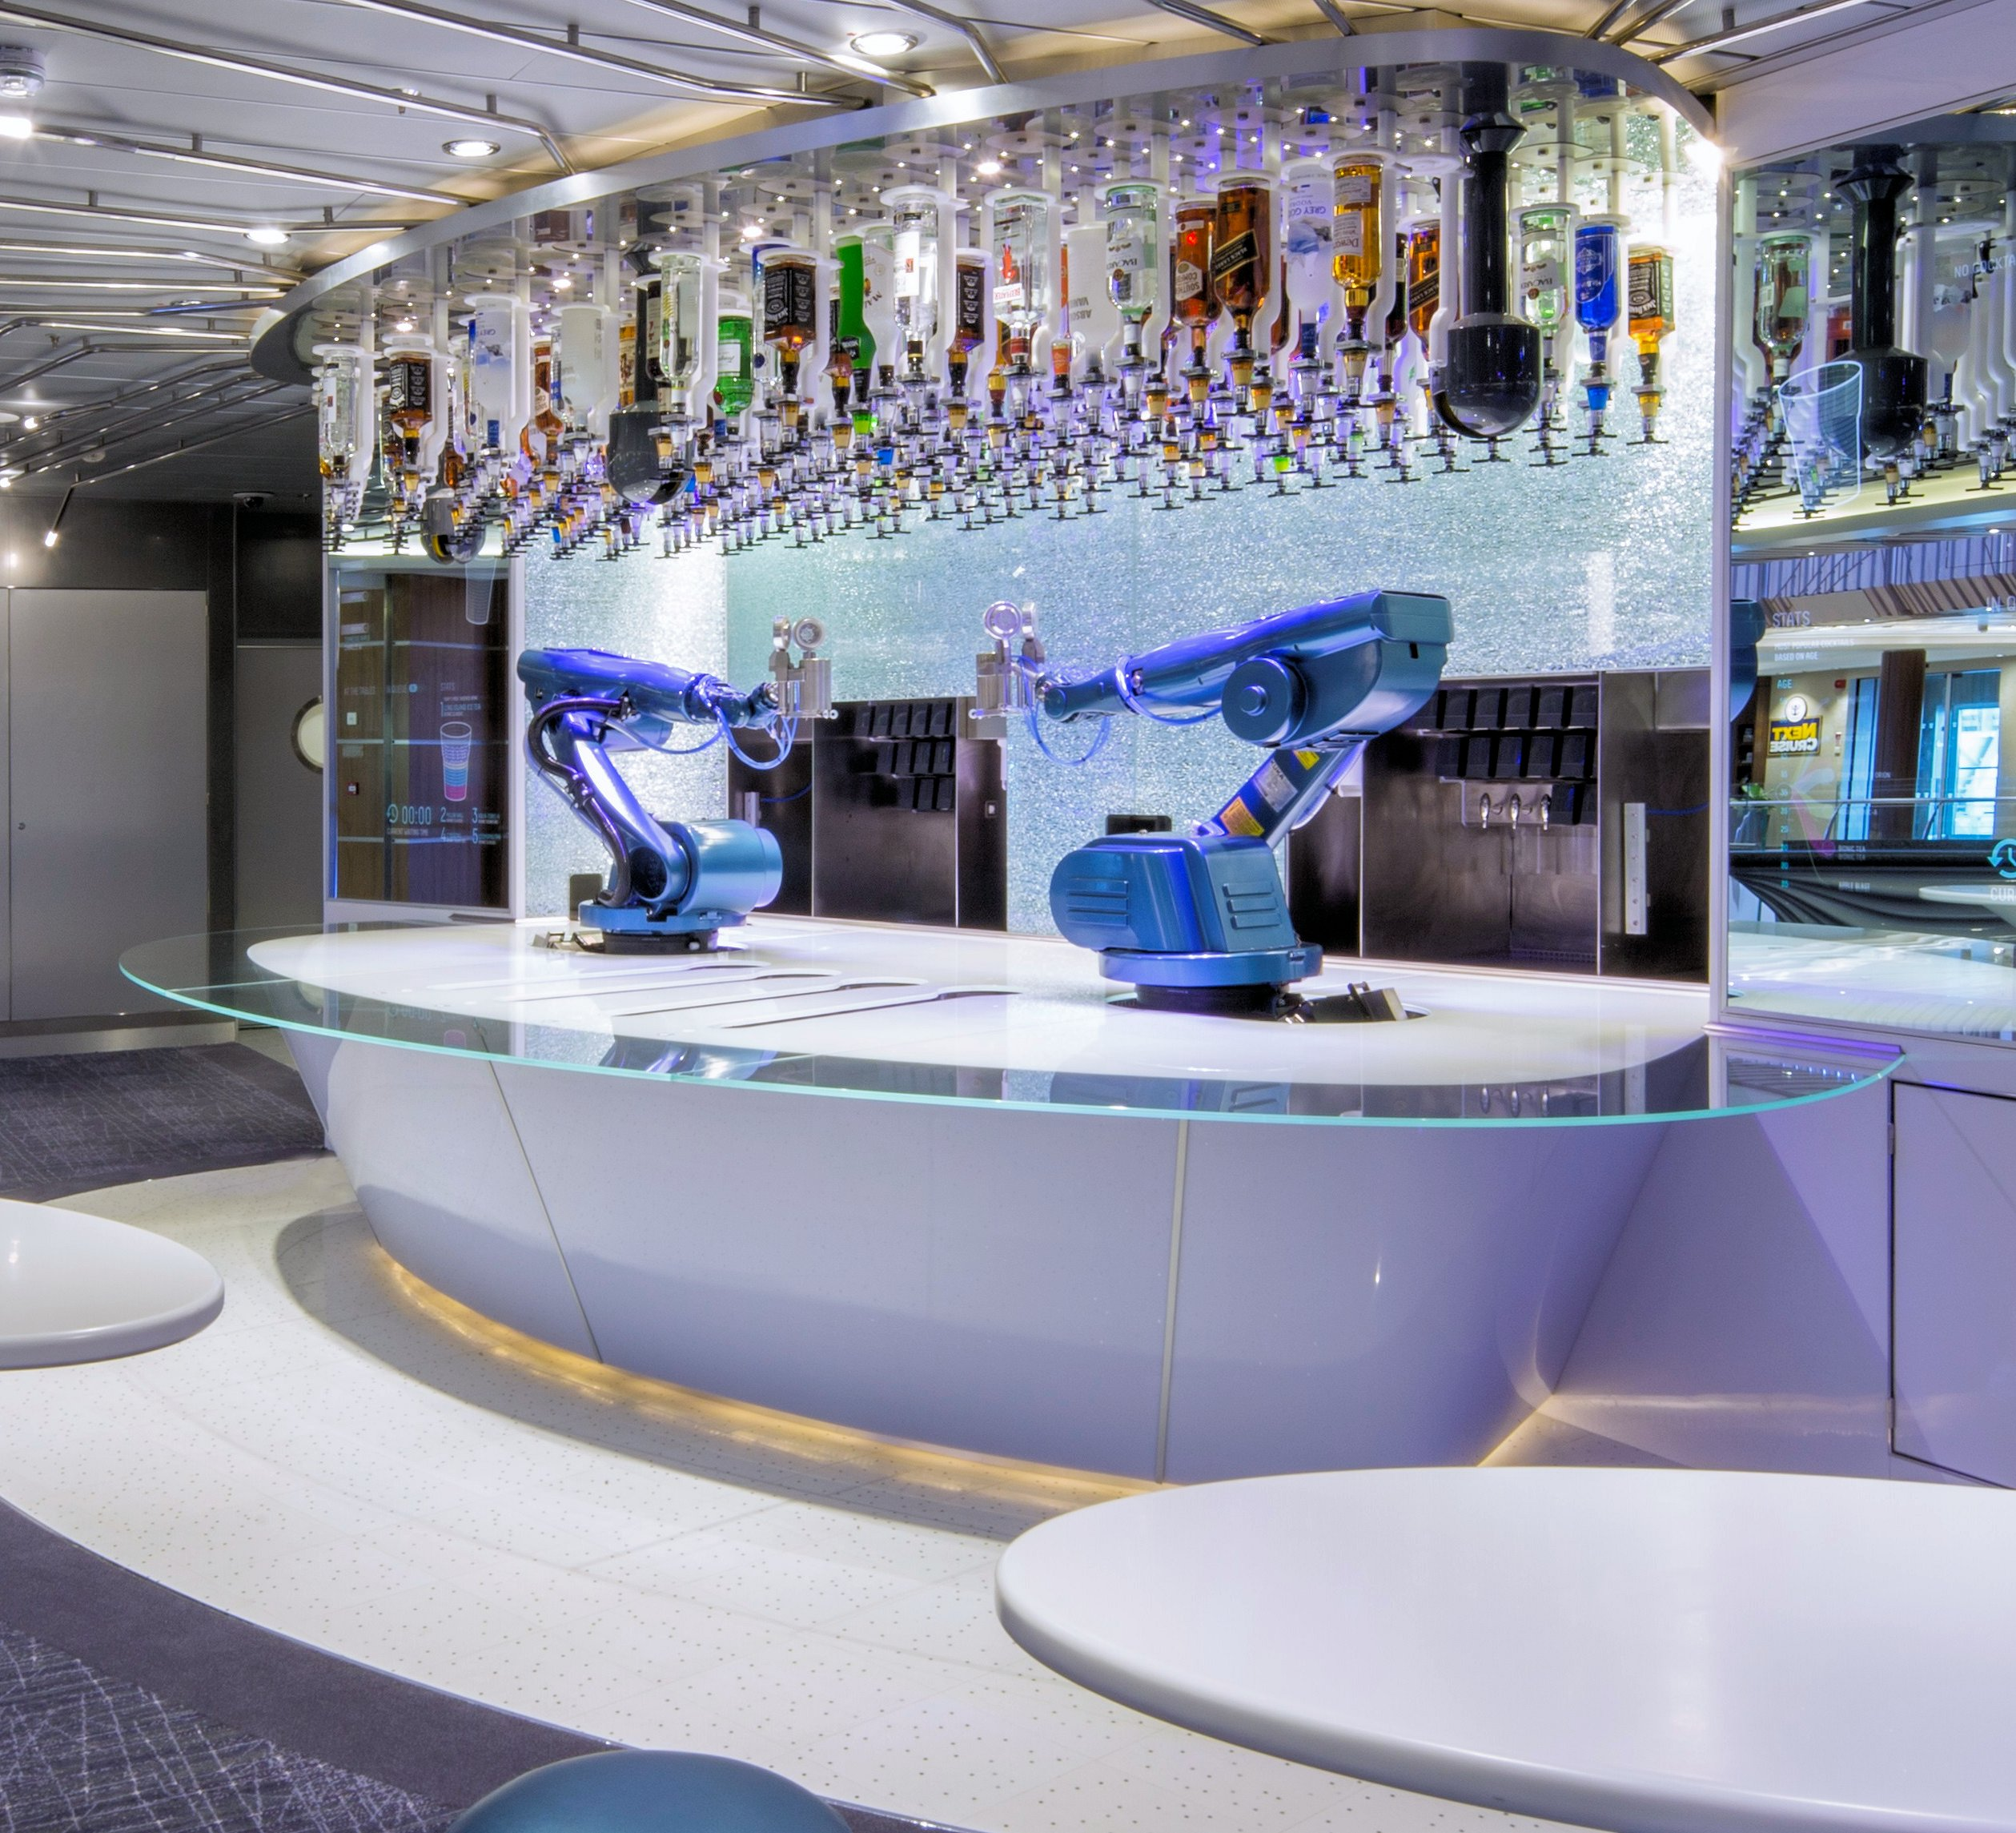 Anthem of the seas review malcolm oliver 39 s waterworld for Anthem of the seas inside cabins